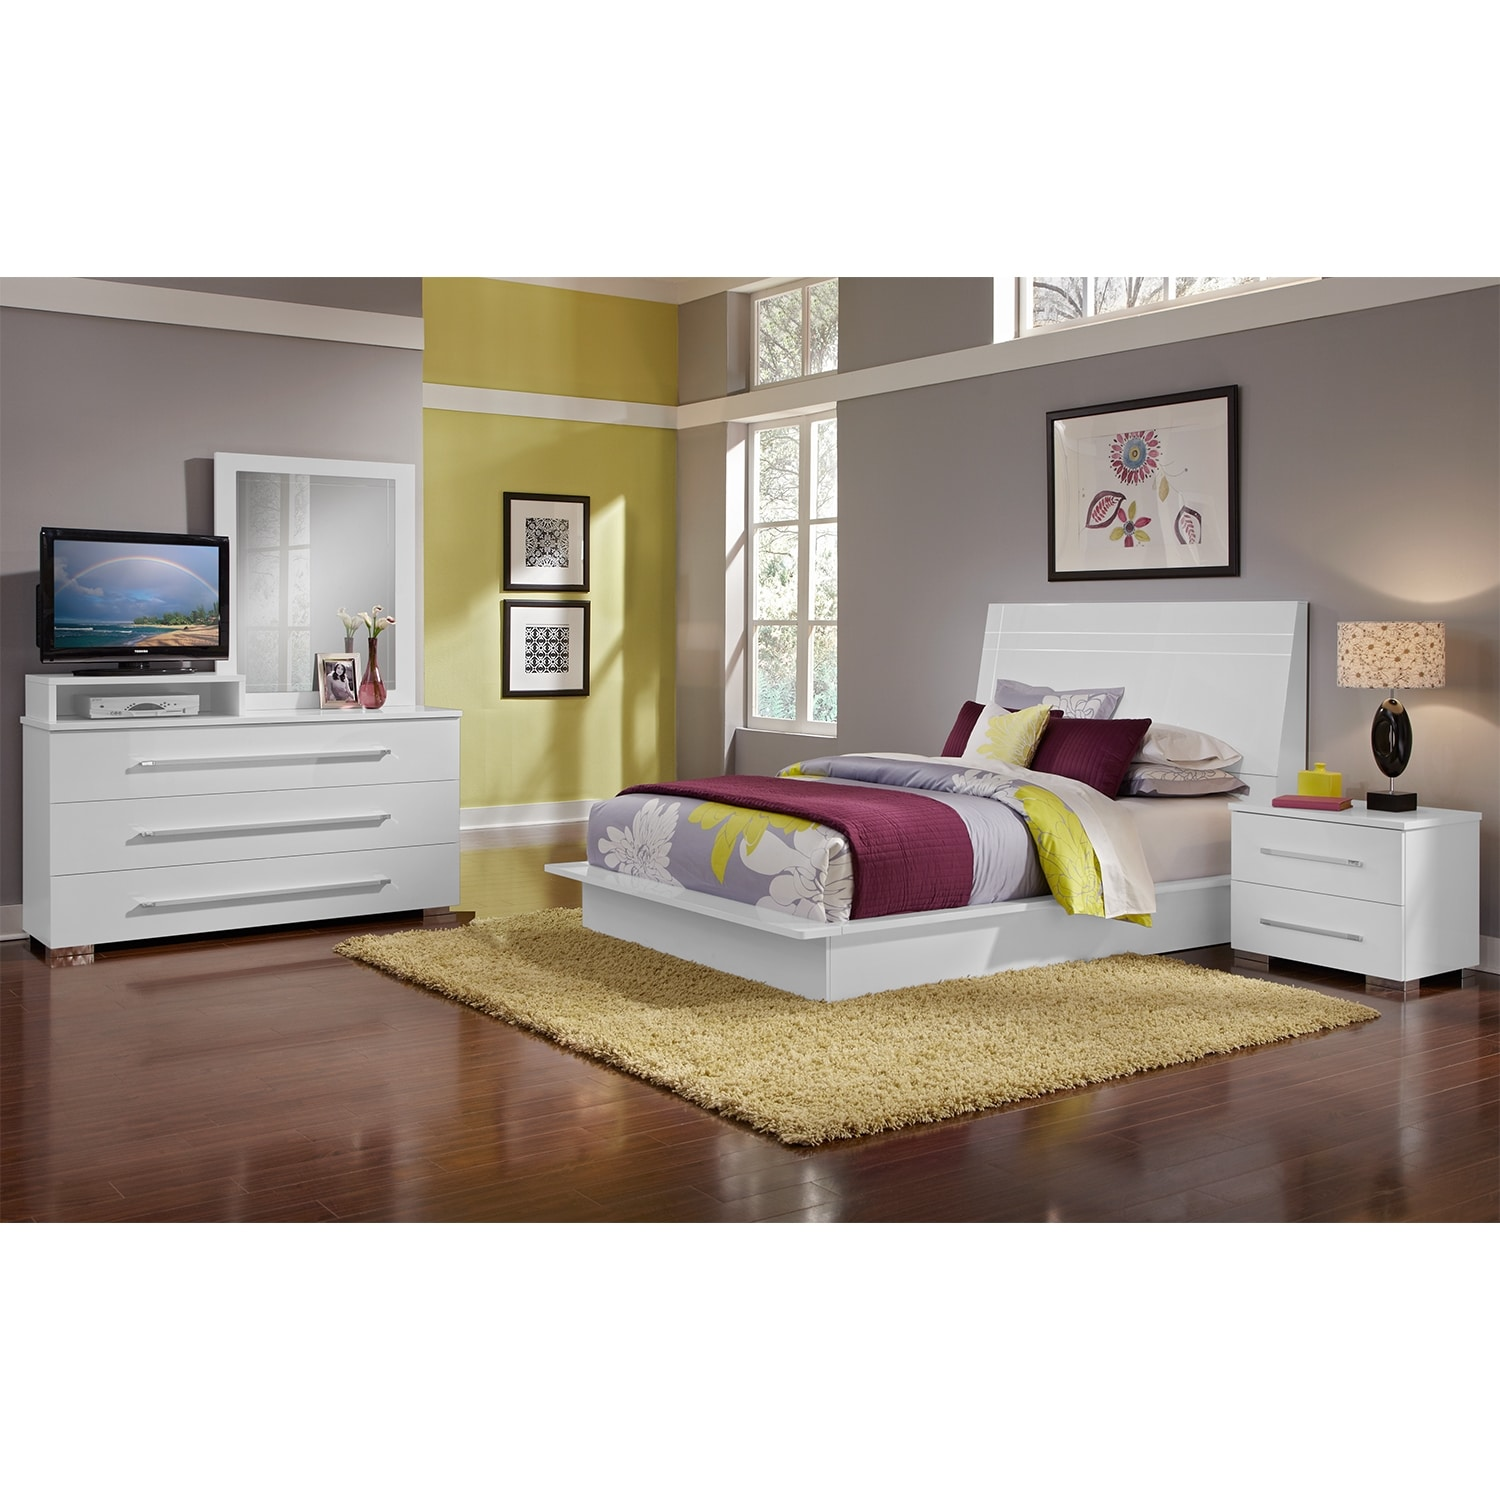 Dimora White II 6 Pc Queen Bedroom American Signature Furniture